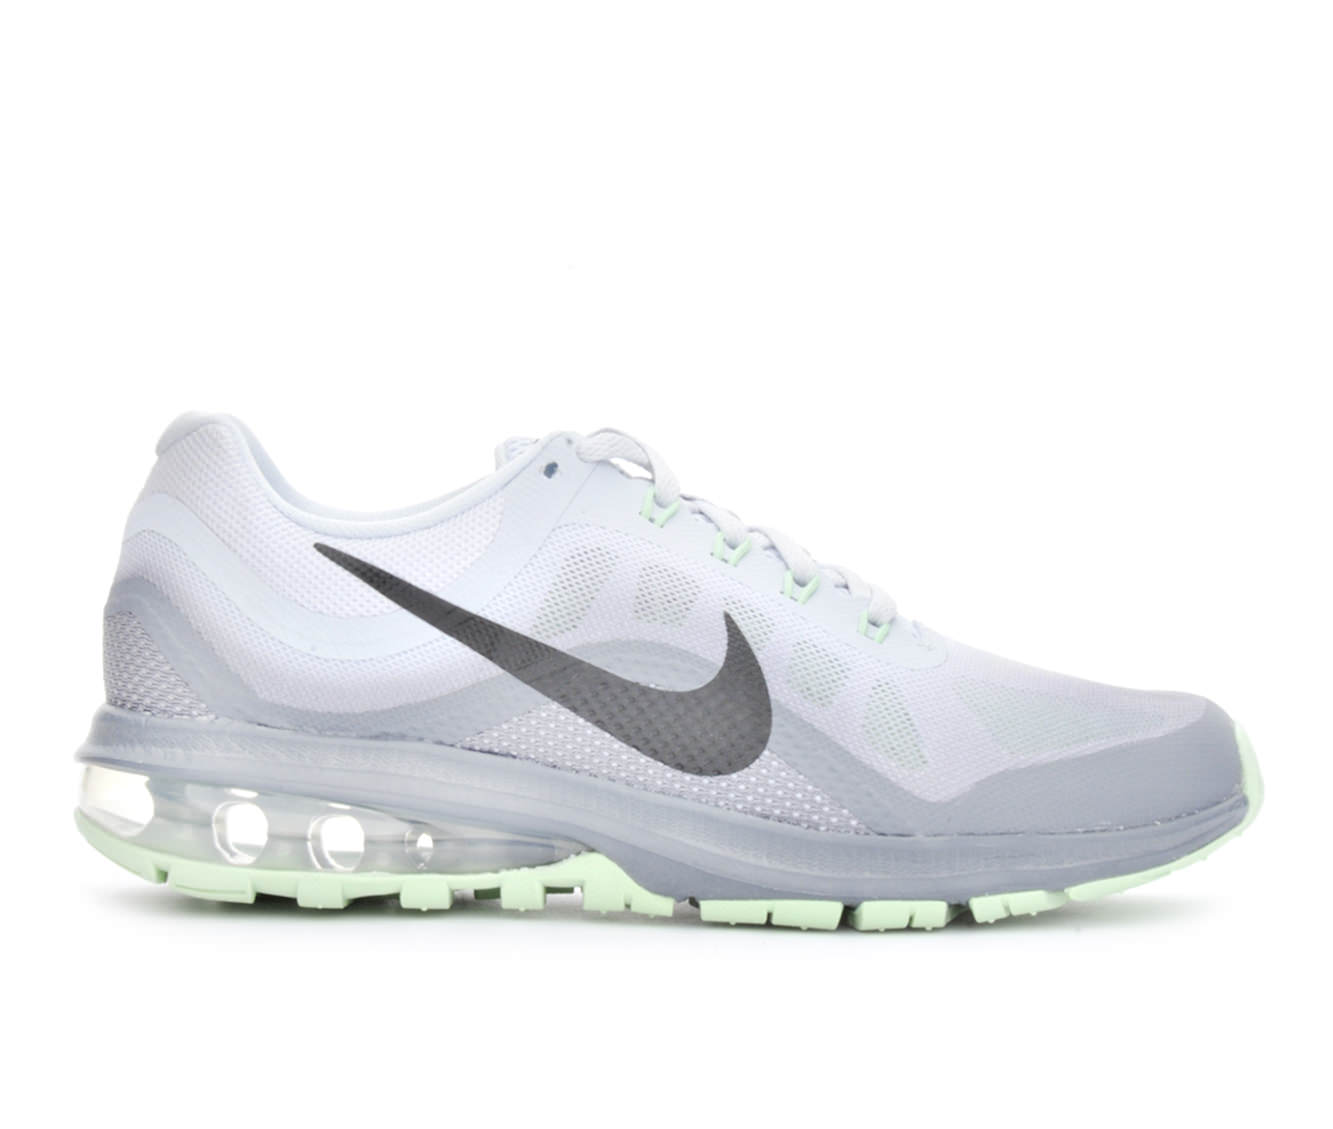 Women's Nike Air Max Dynasty 2 Running Shoes (Grey - Size 9) 1643204